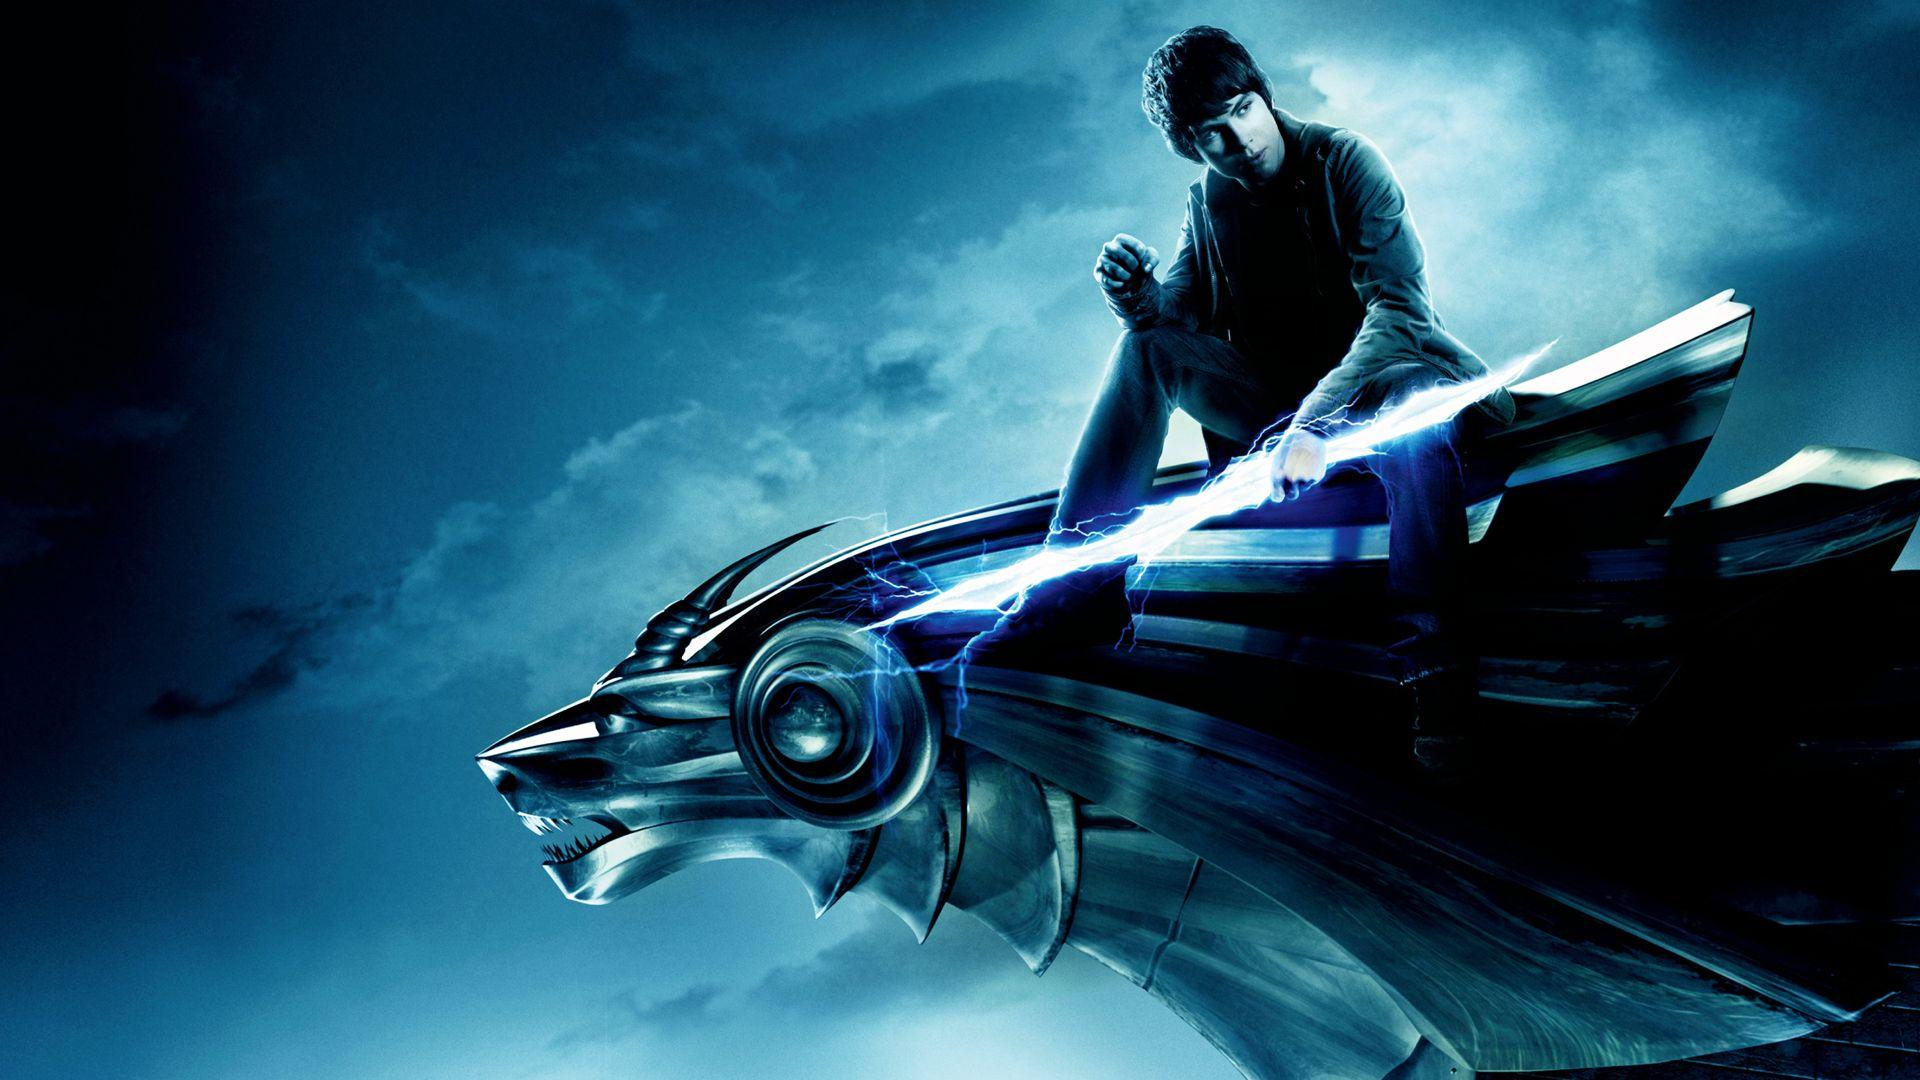 Percy Jackson Books Wallpapers - Wallpaper Cave